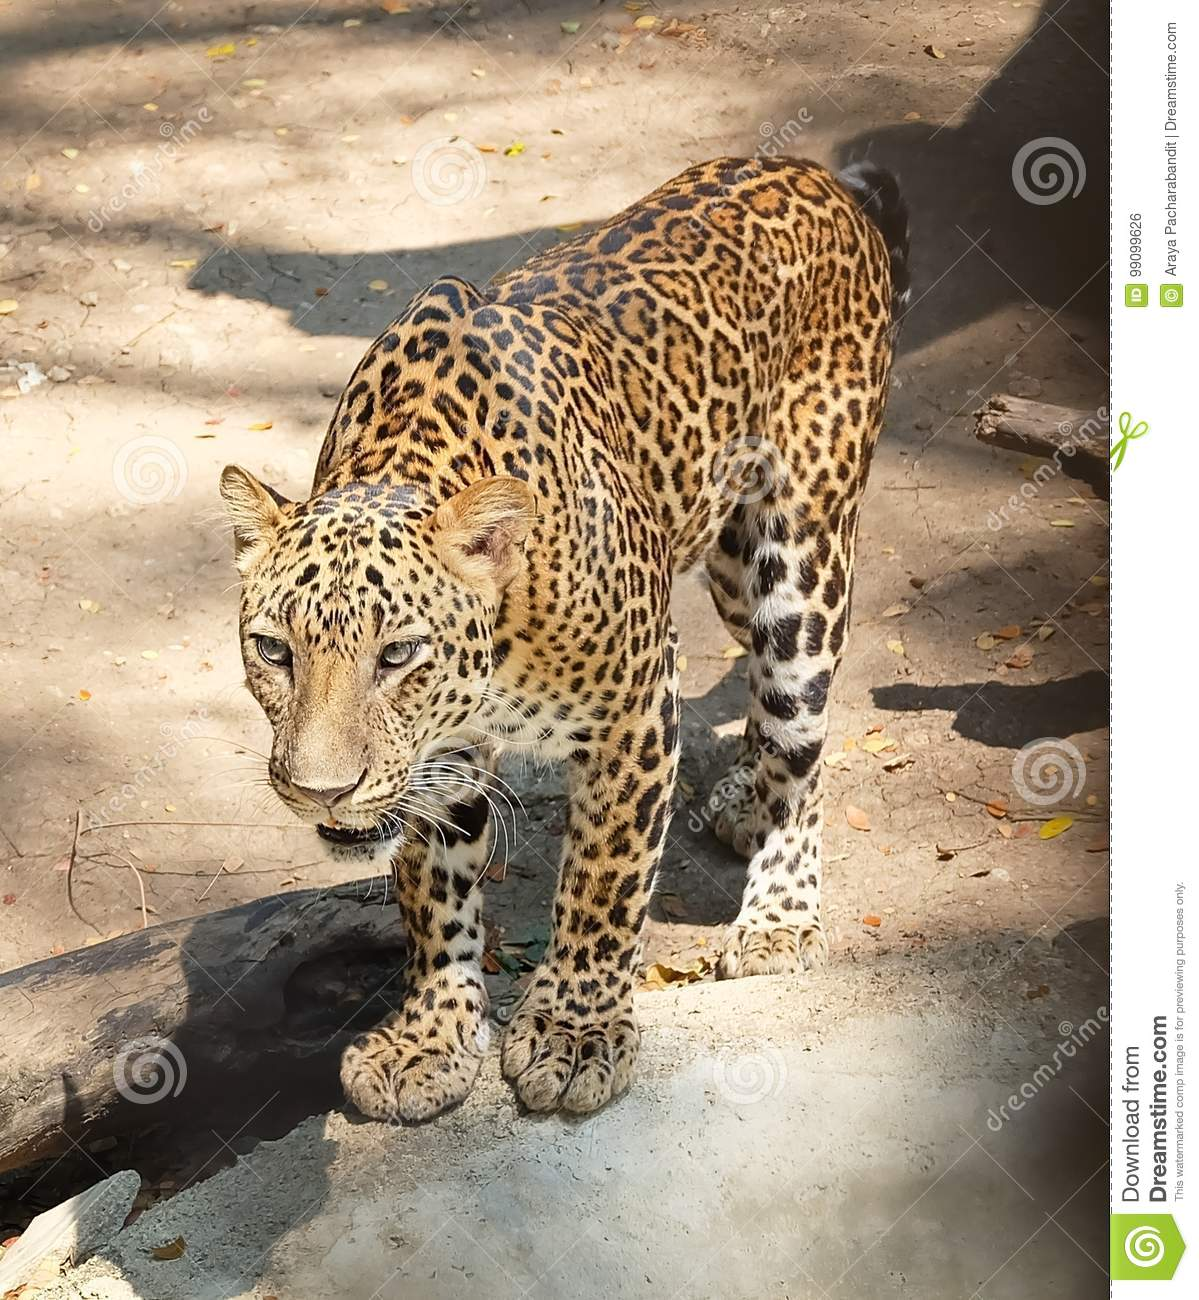 Panthera Onca Stock Images: Adult Jaguar Or Panthera Onca In Safari Stock Photo